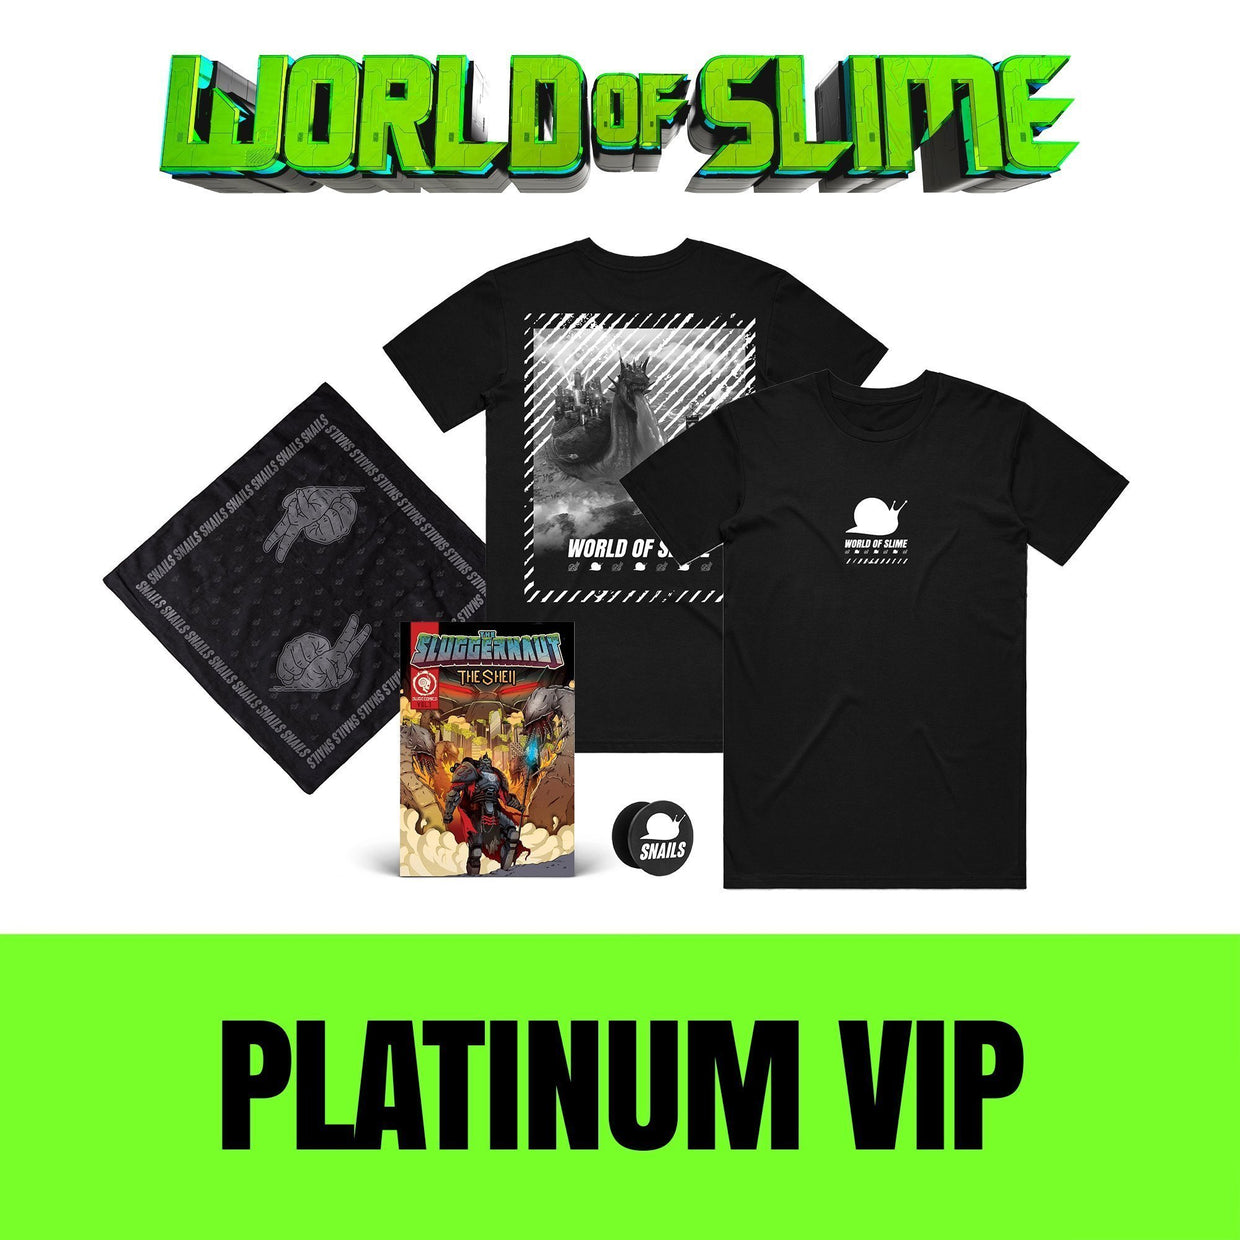 World Of Slime Tour - Los Angeles - 11/17